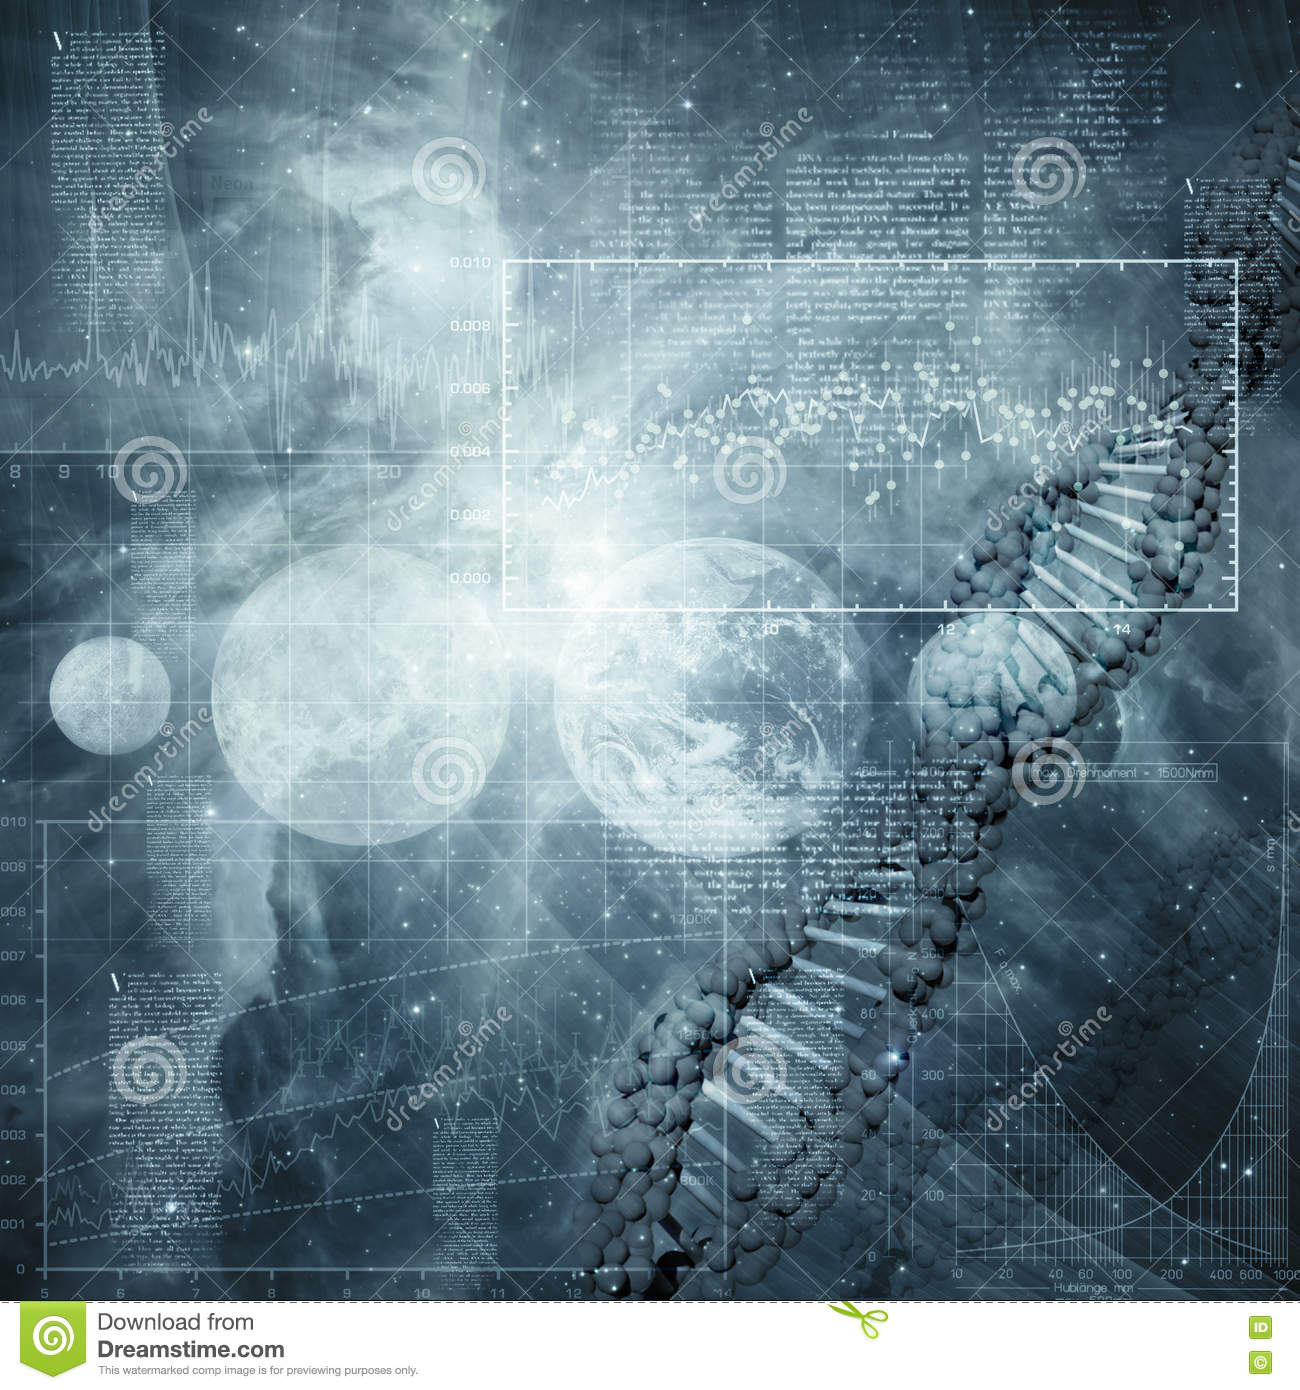 Abstract science and technology backgrounds